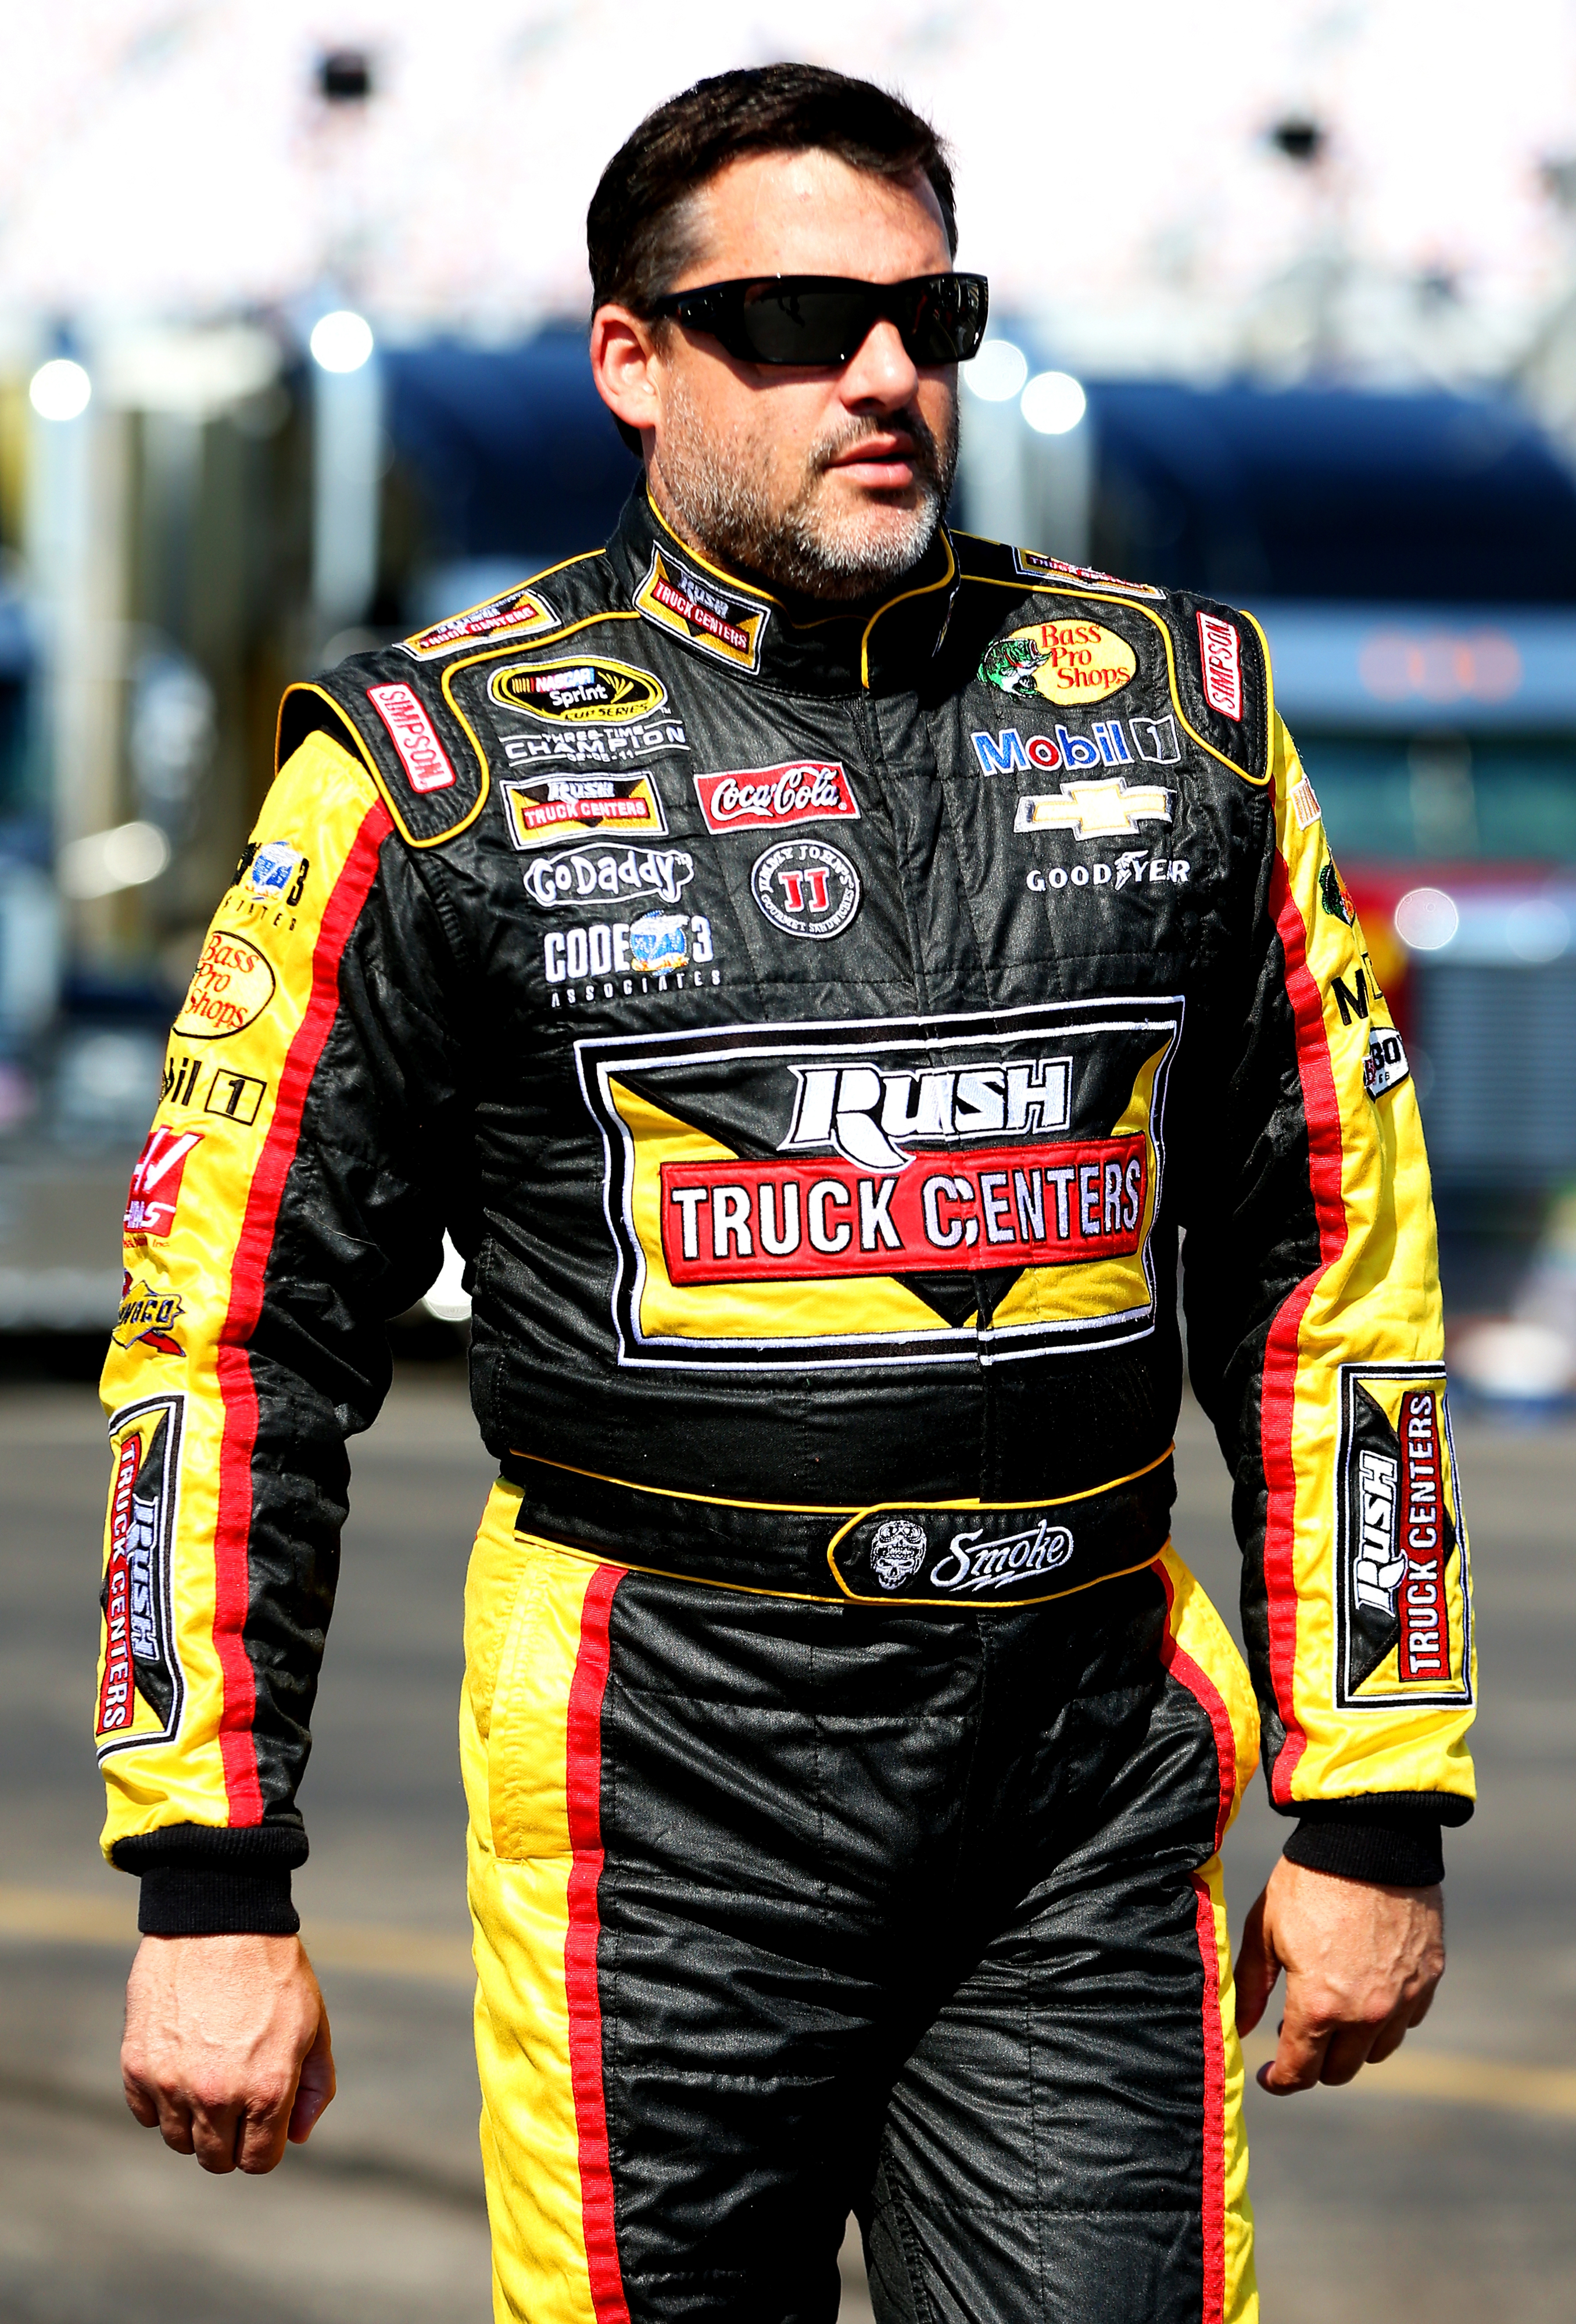 Stewart-Haas Racing: Tony Stewart is 'dealing with quite a bit of grief'